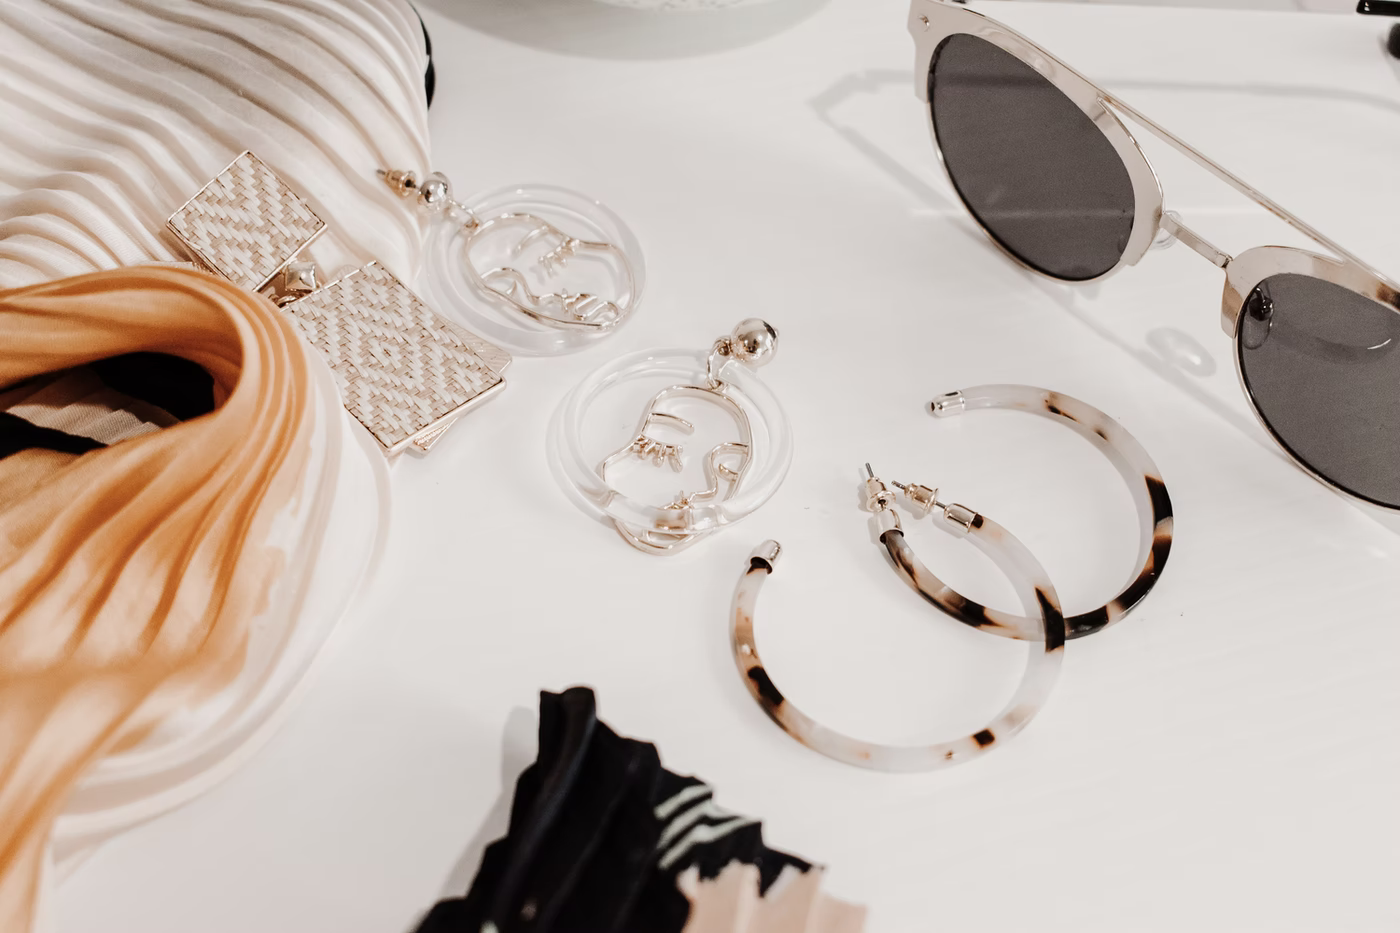 accessorizing-with-jewelry-to-enhance-and-reflect-your-personal-style